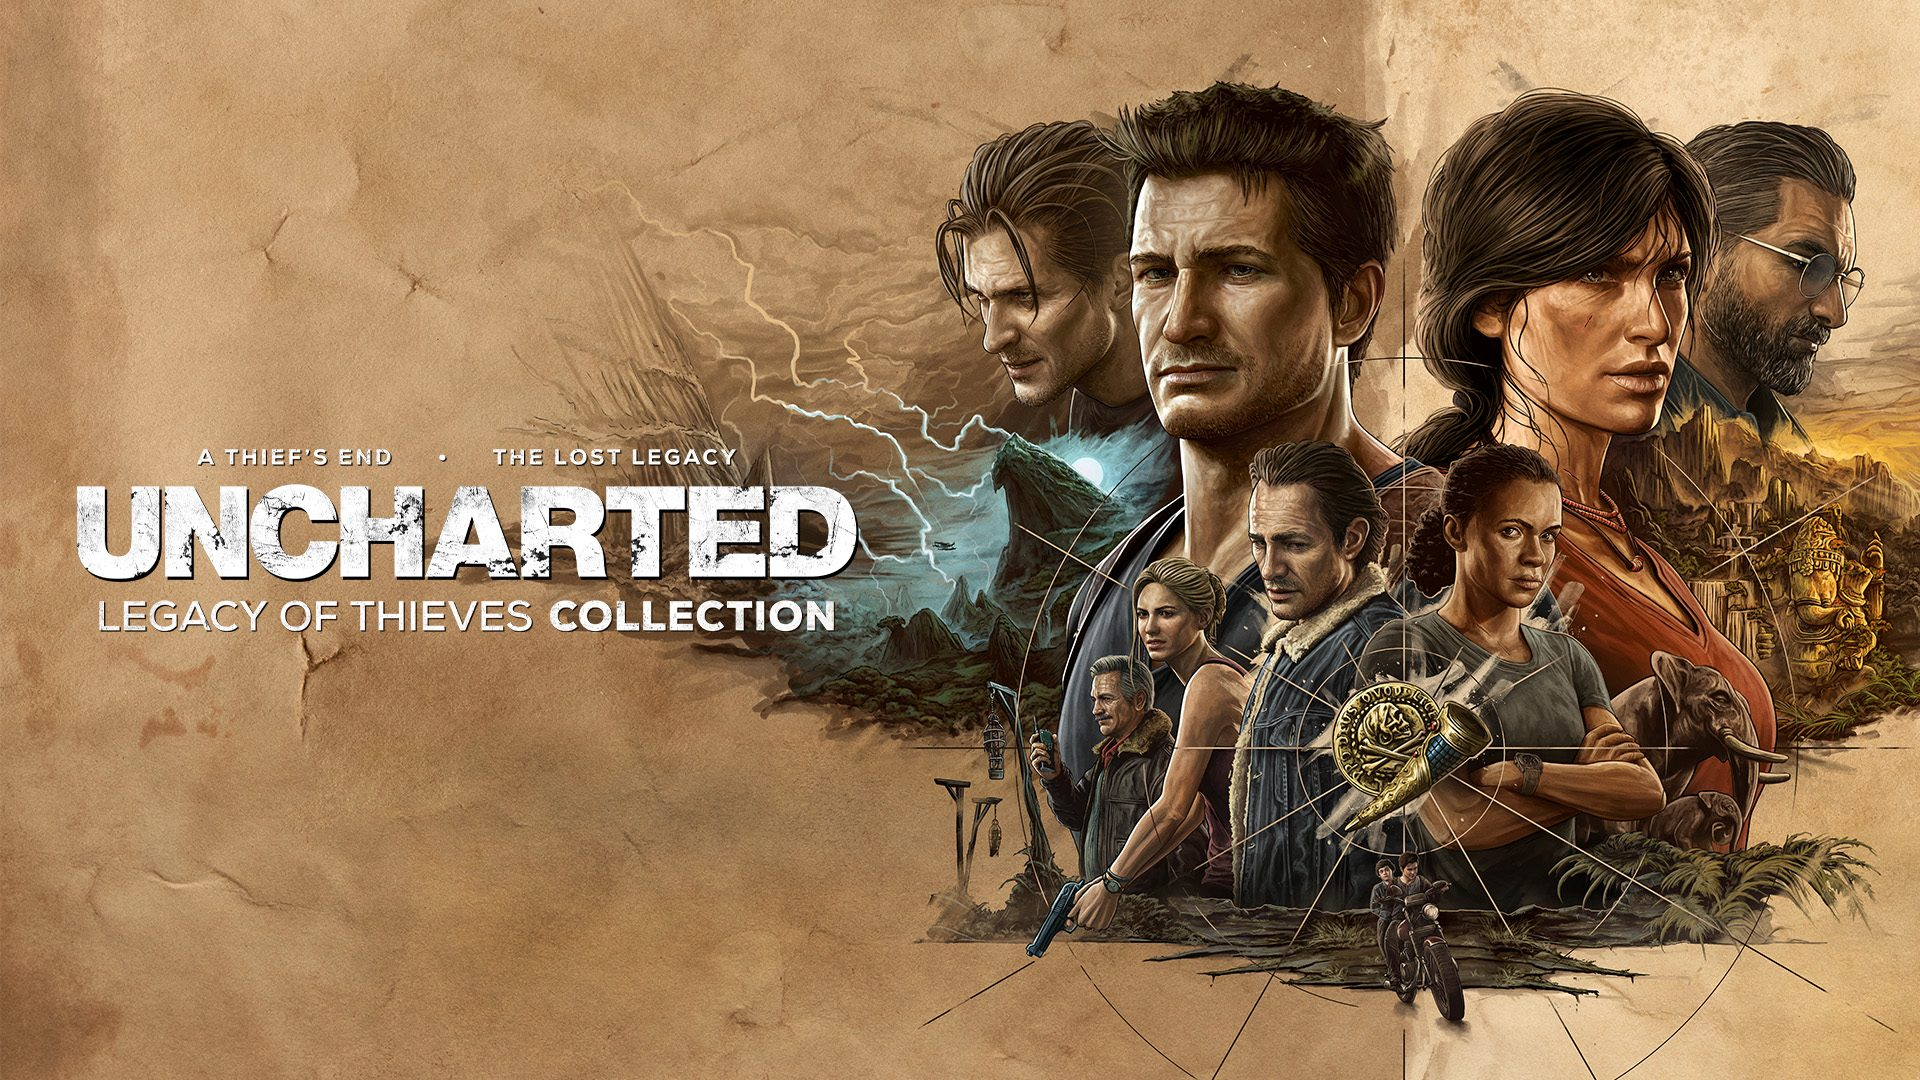 Uncharted-Legacy-of-Thieves-Collection-Featured-image.jpg